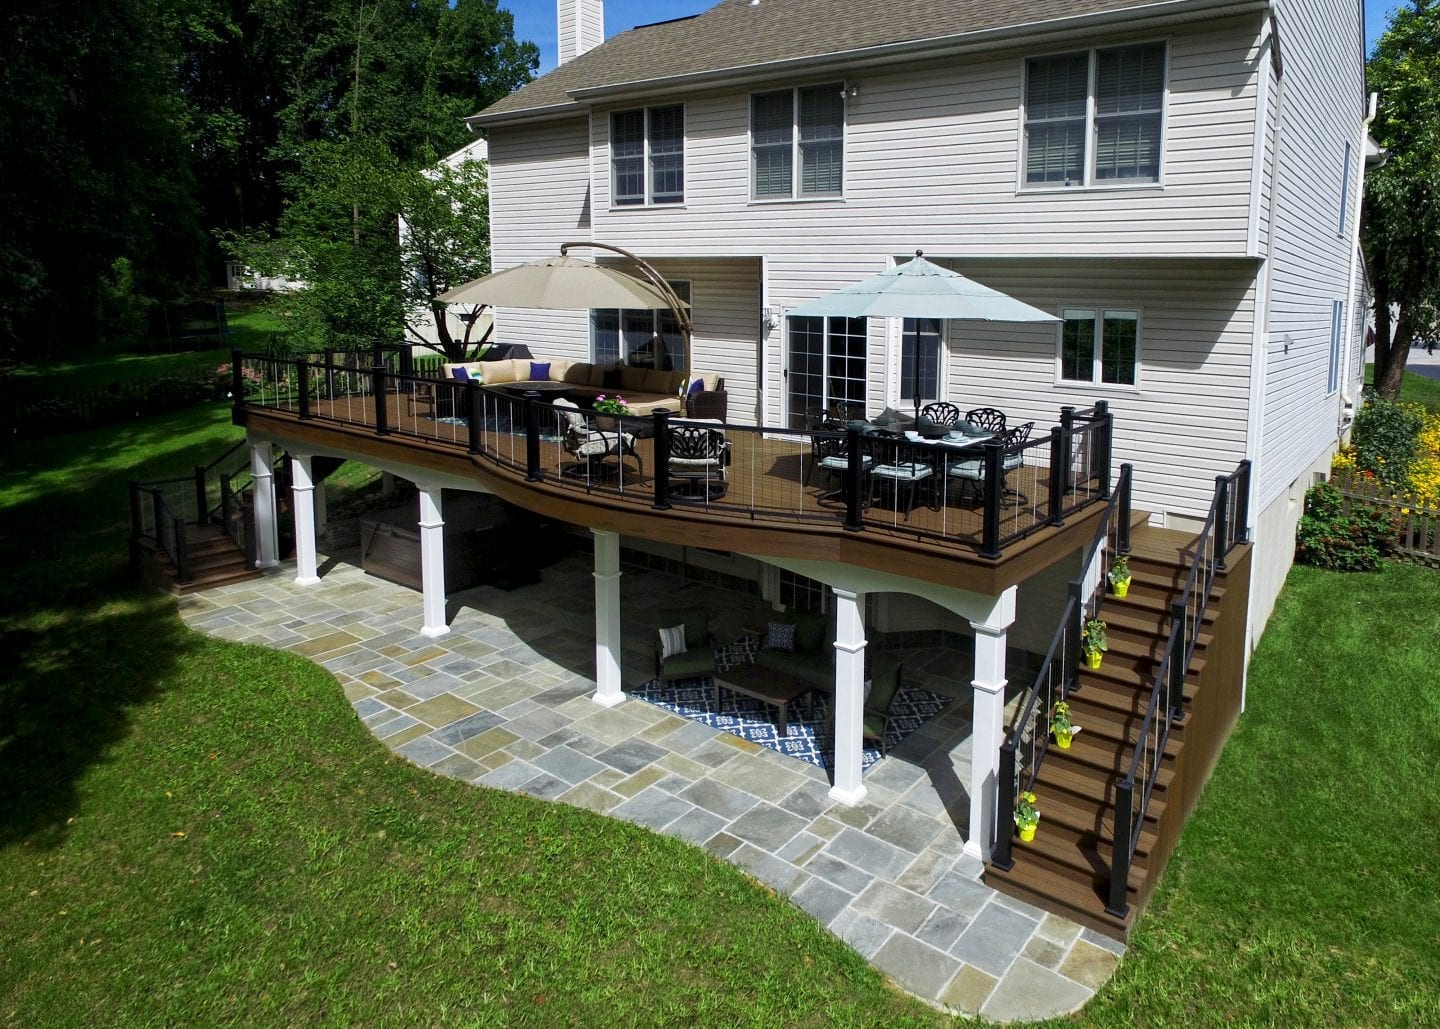 Elevated Deck Designs | Safety Features for Above Ground Decks on Back Deck Ideas For Ranch Style Homes id=96288